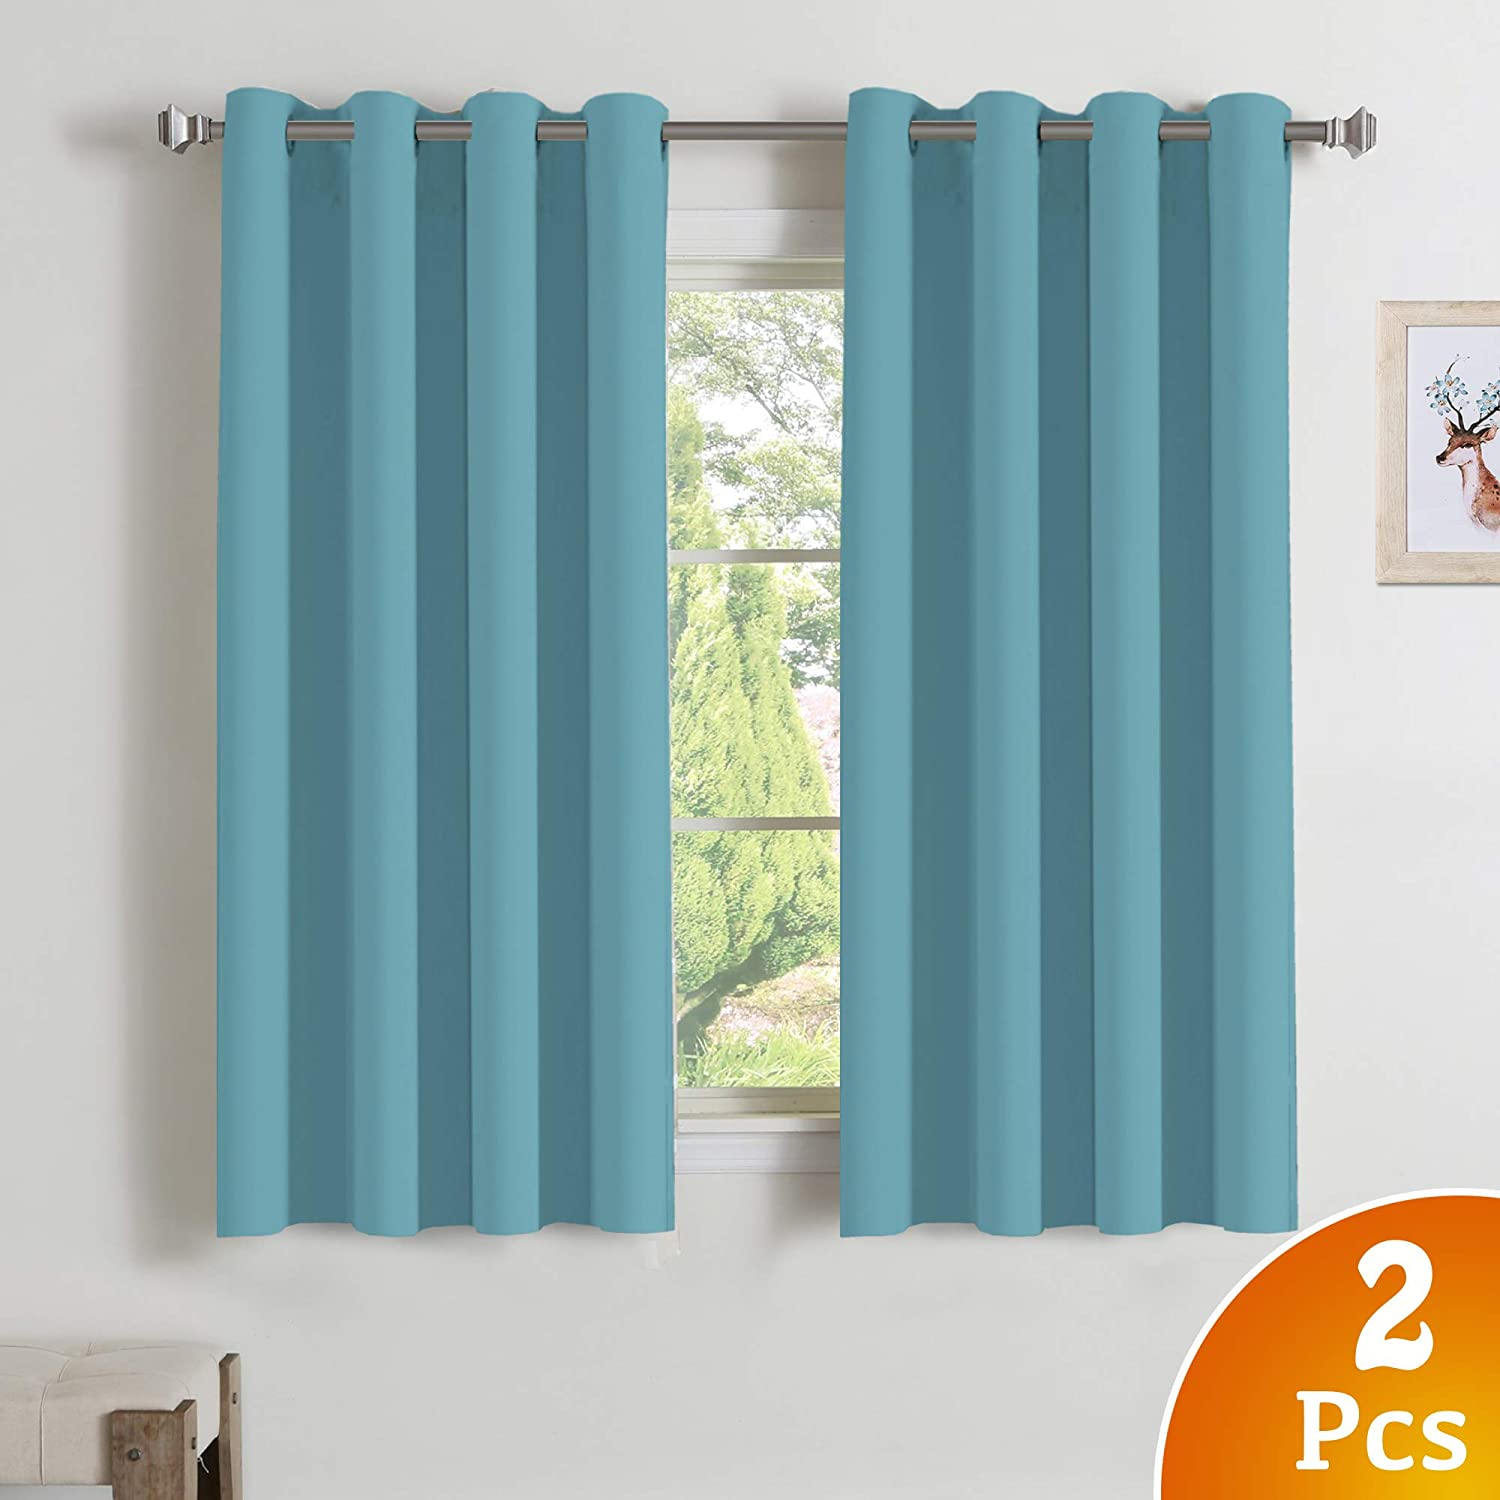 Blackout Aqua Curtains for Bedroom/Living Room Window Treatment Thermal Insulated Solid Grommet Blackout Curtains/Panels/Drapes for Bedroom Grommet Window Drapes 2 Panels, 52 x 63 Inch, Aqua